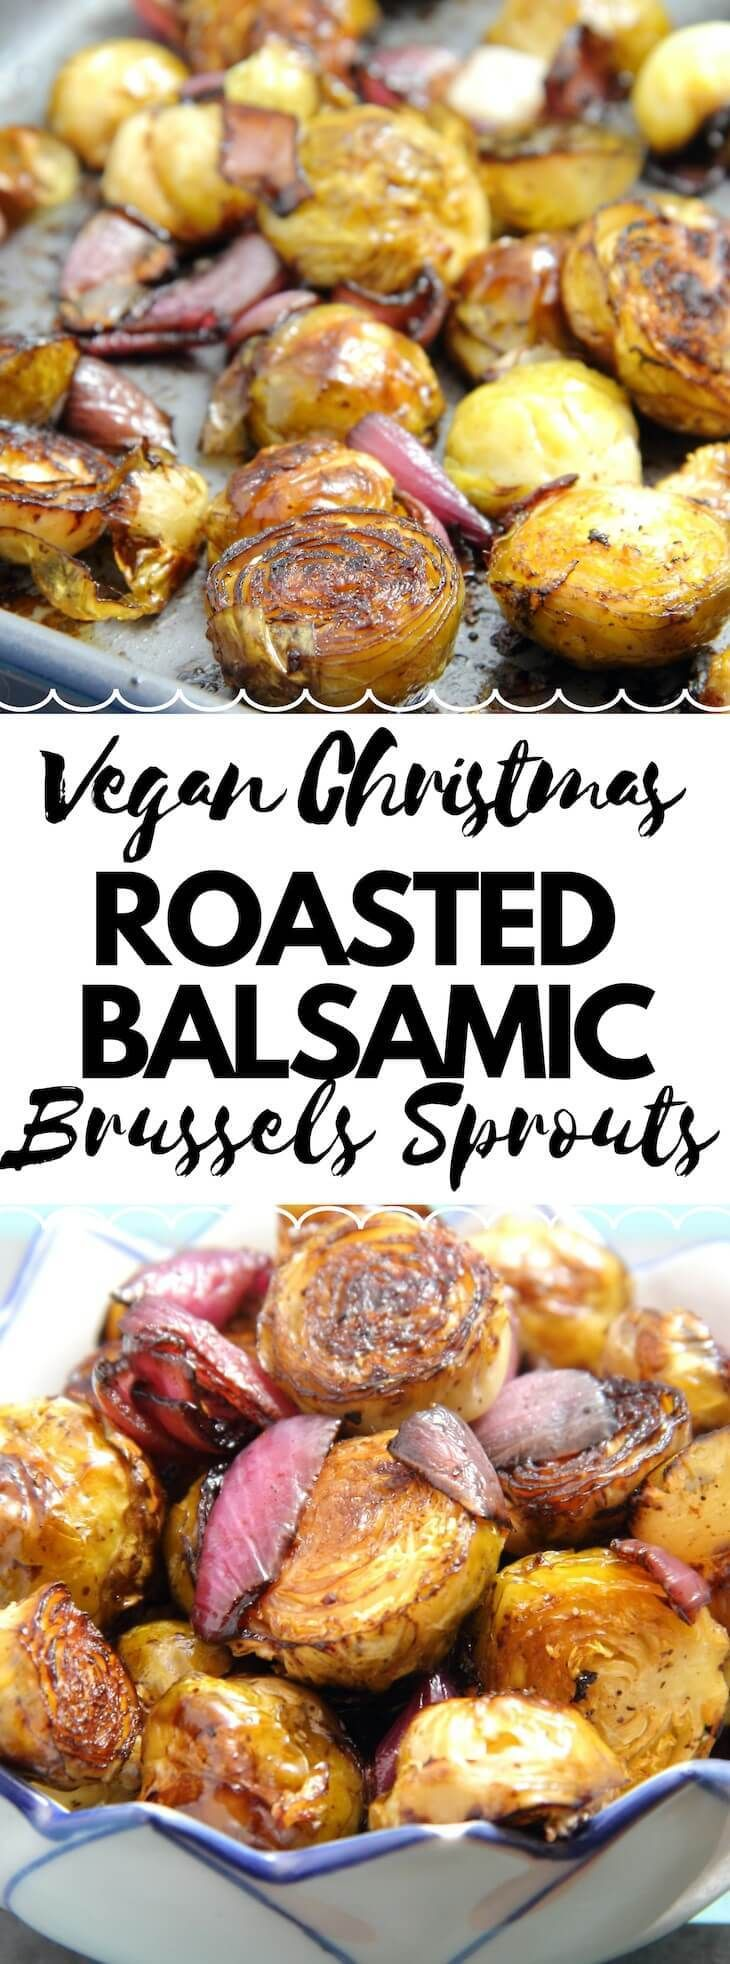 Brussels Sprouts 3 Ways Roasted Balsamic Sprouts Vegan